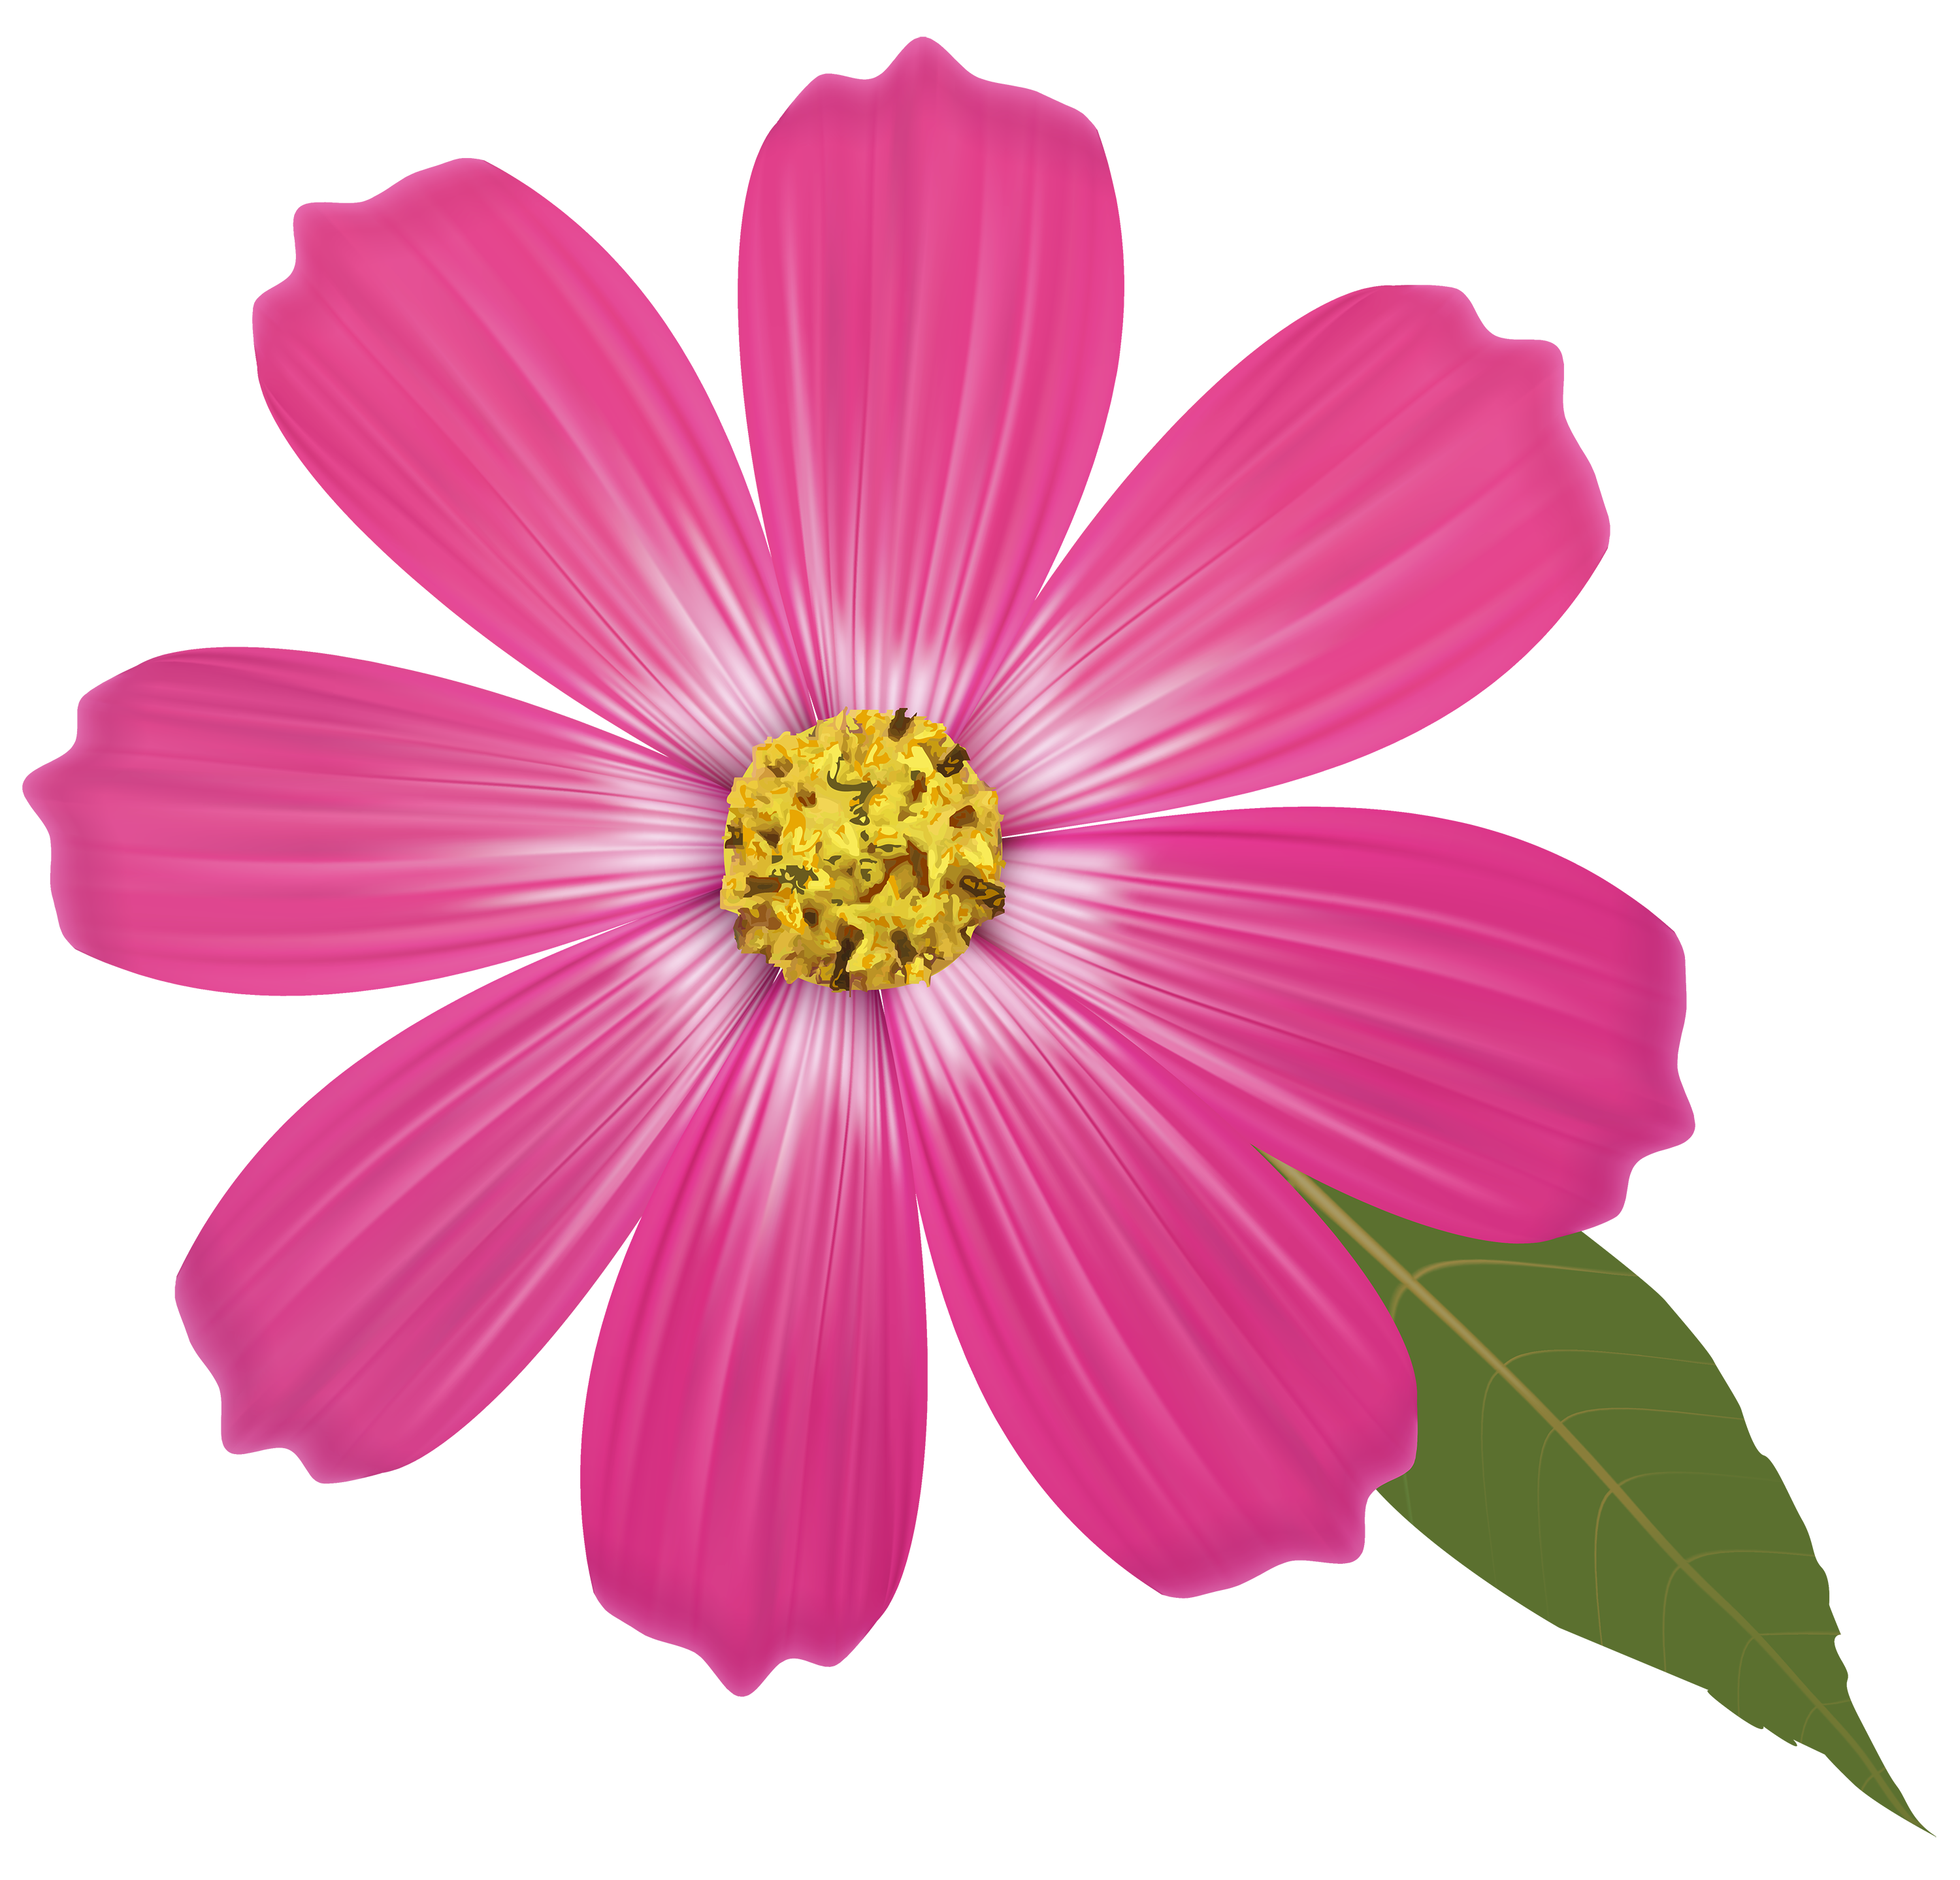 Pink best web. Flower clipart png